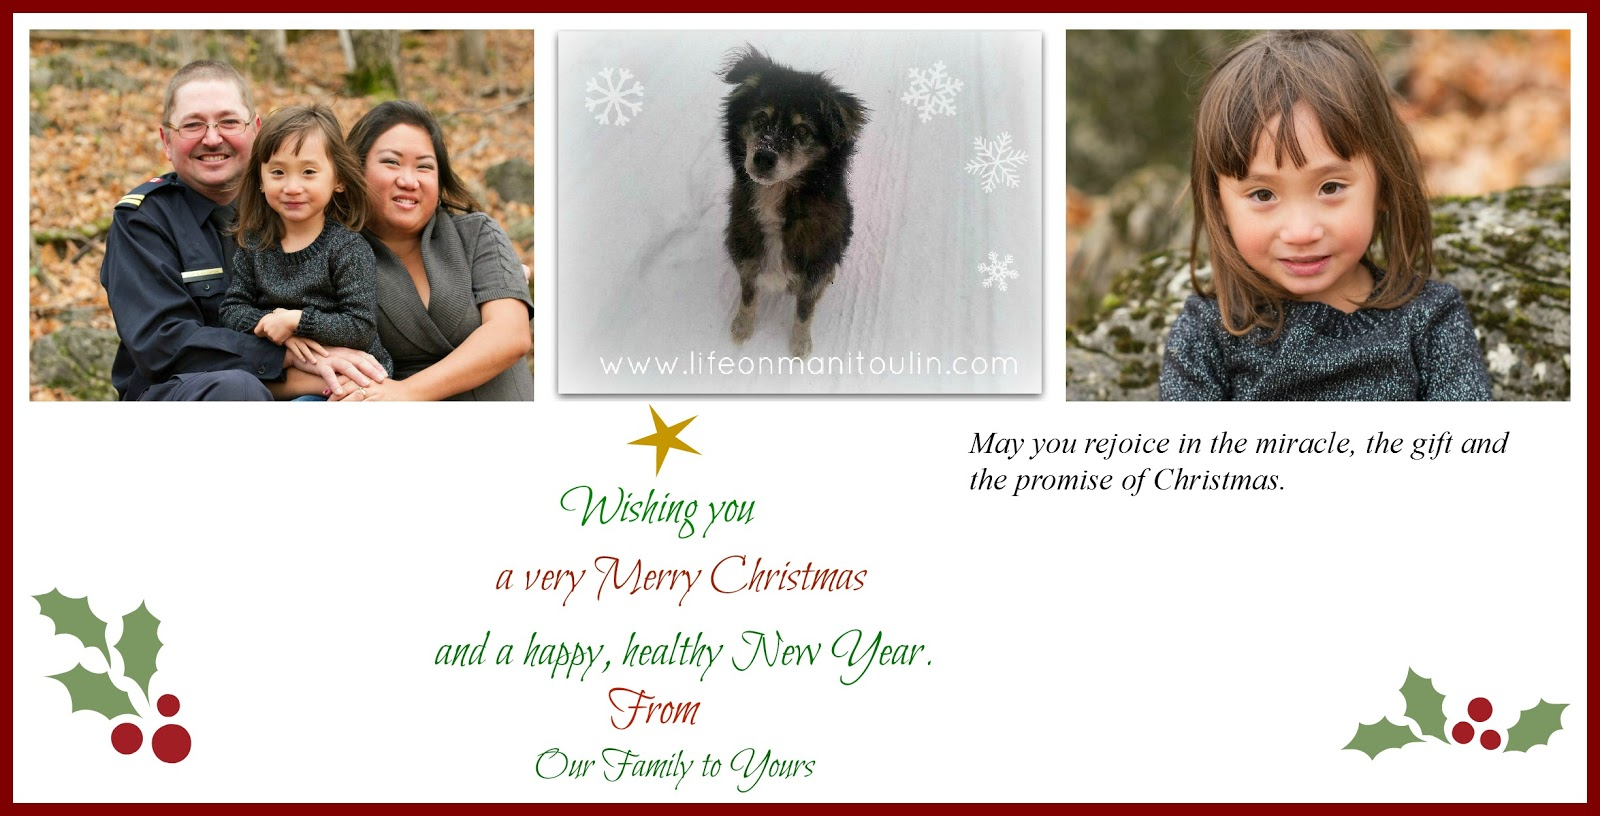 From our family to yours the seasons greetings dilemma life from our family to yours the seasons greetings dilemma m4hsunfo